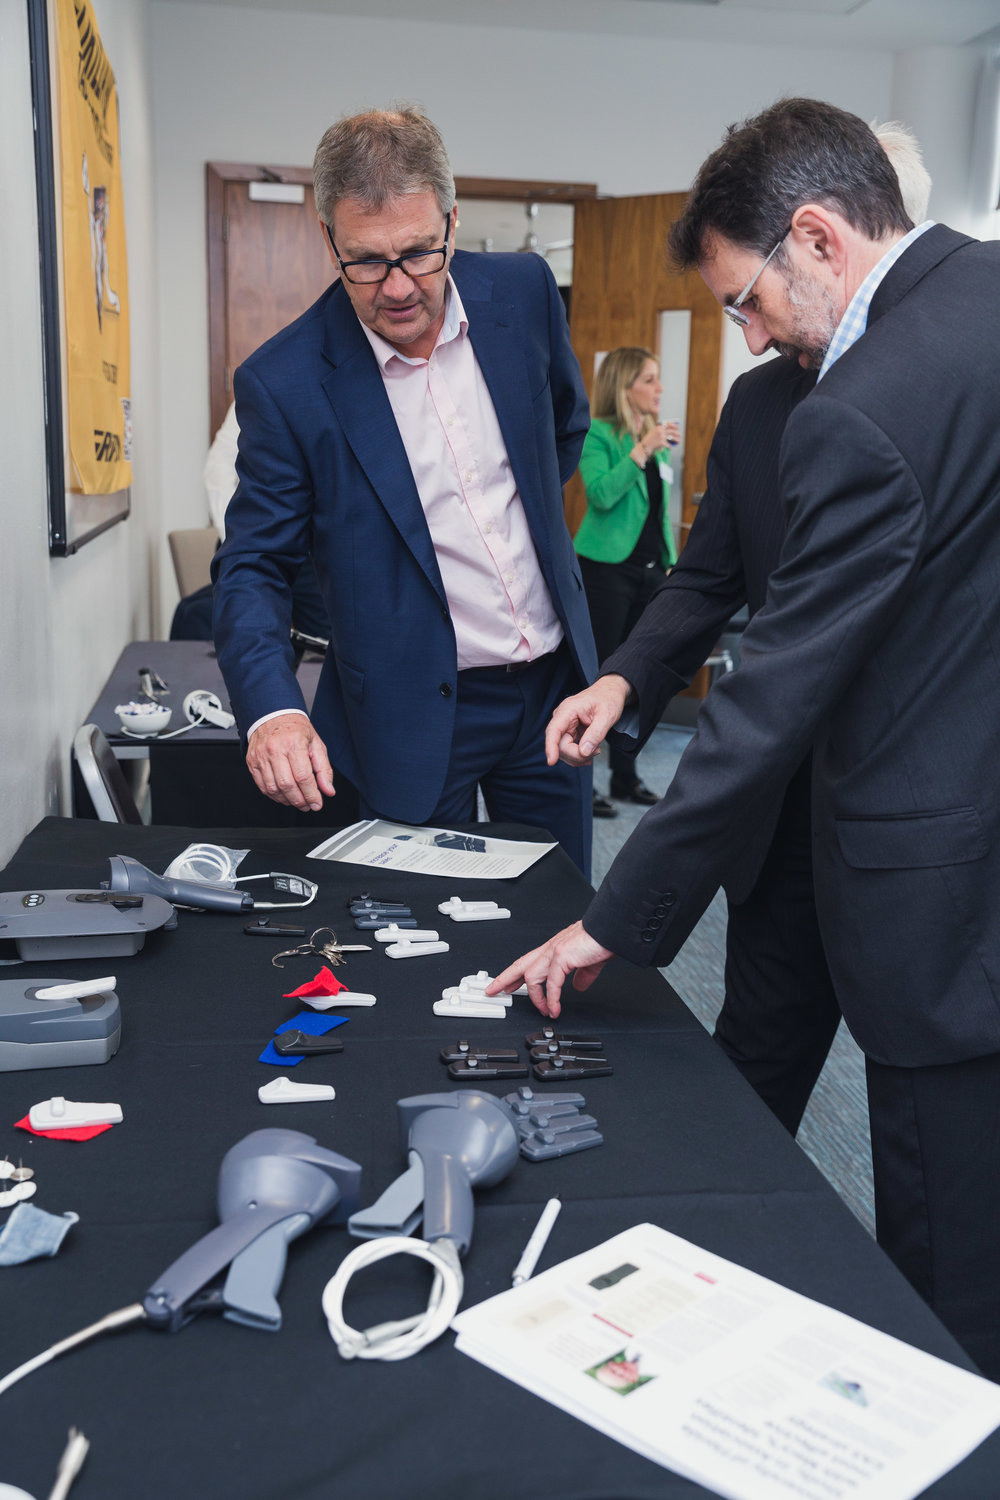 STPLUS1 Tag - A selection of the STPLUS1 Tags showcased at the Evolution Launch Day in London